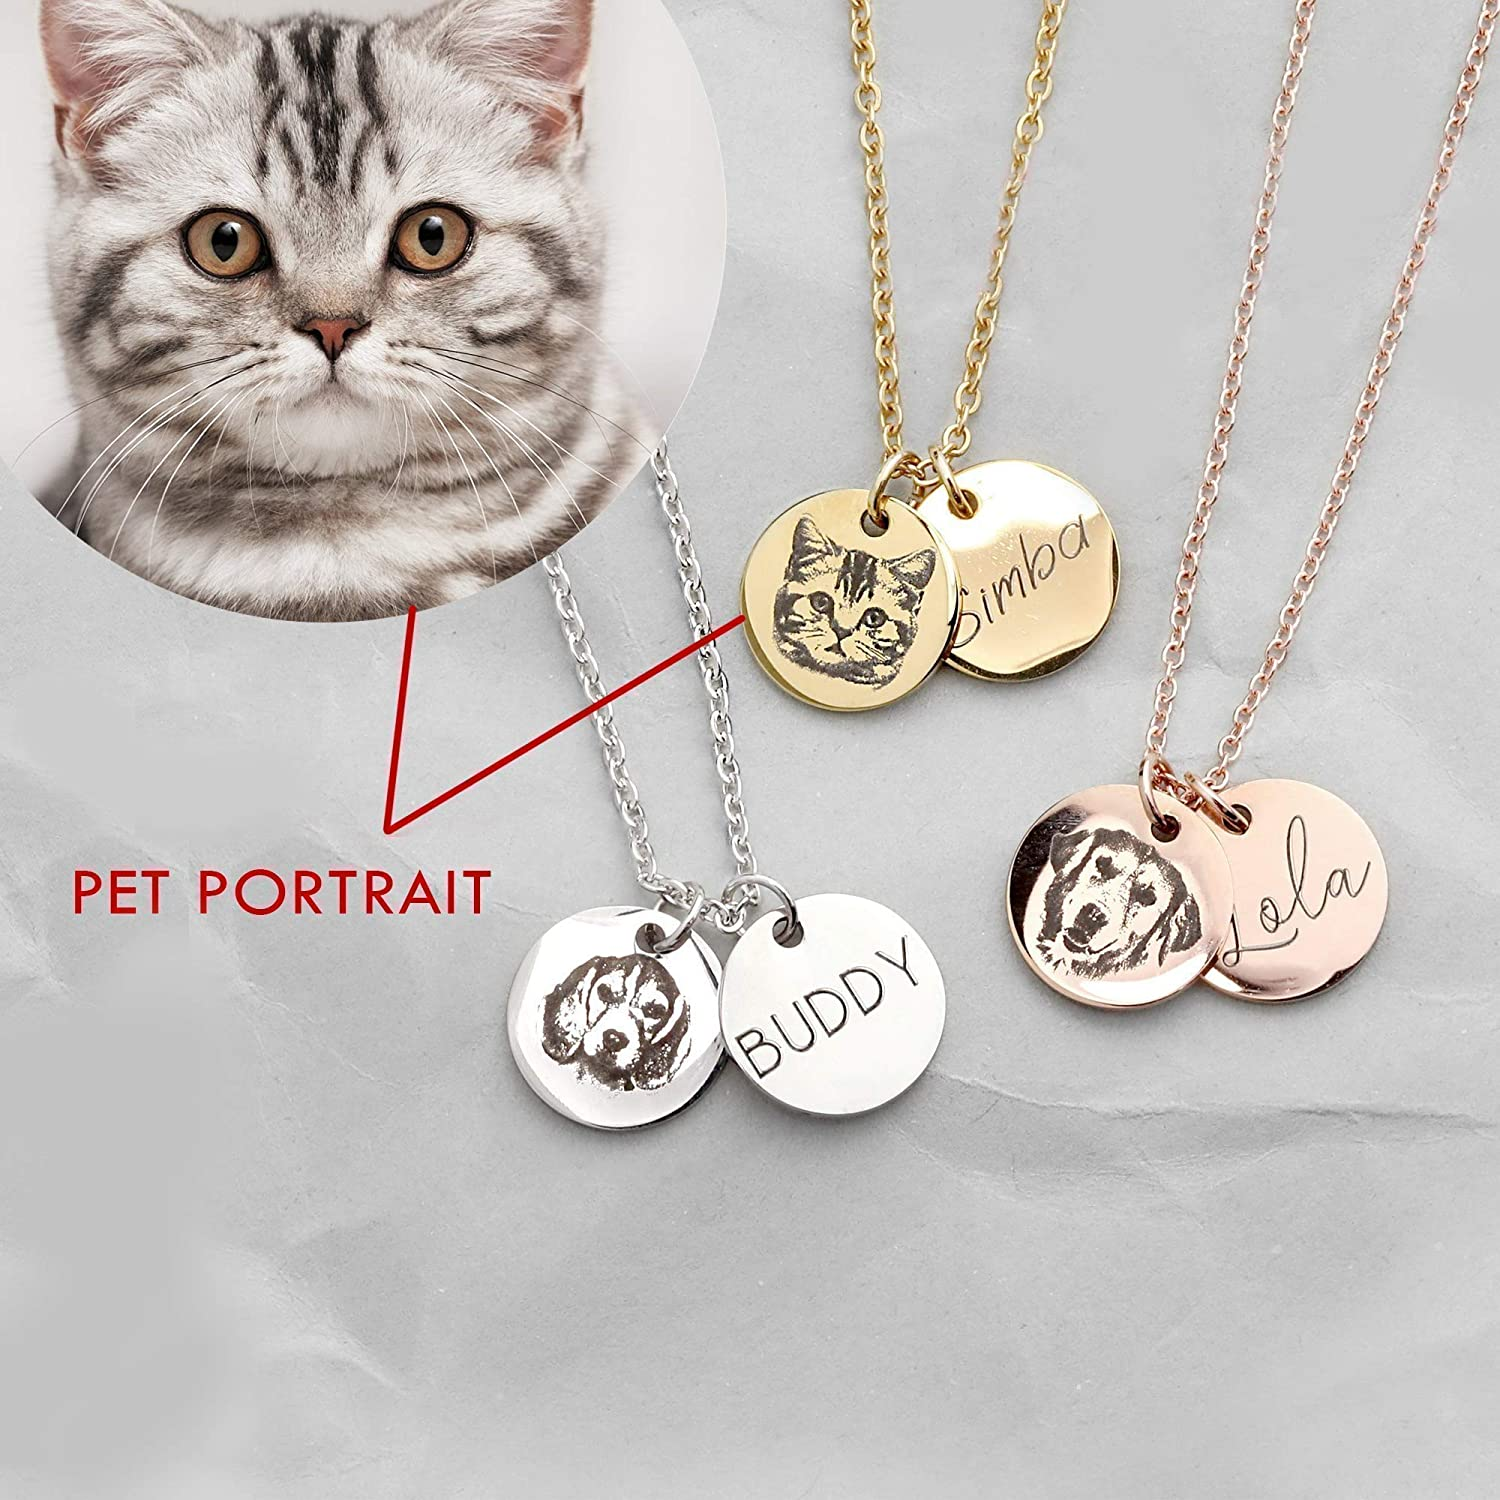 Cat Gifts Cat Memorial Cat Charm PERSONALIZED Cat Lover Gift Cat Necklace